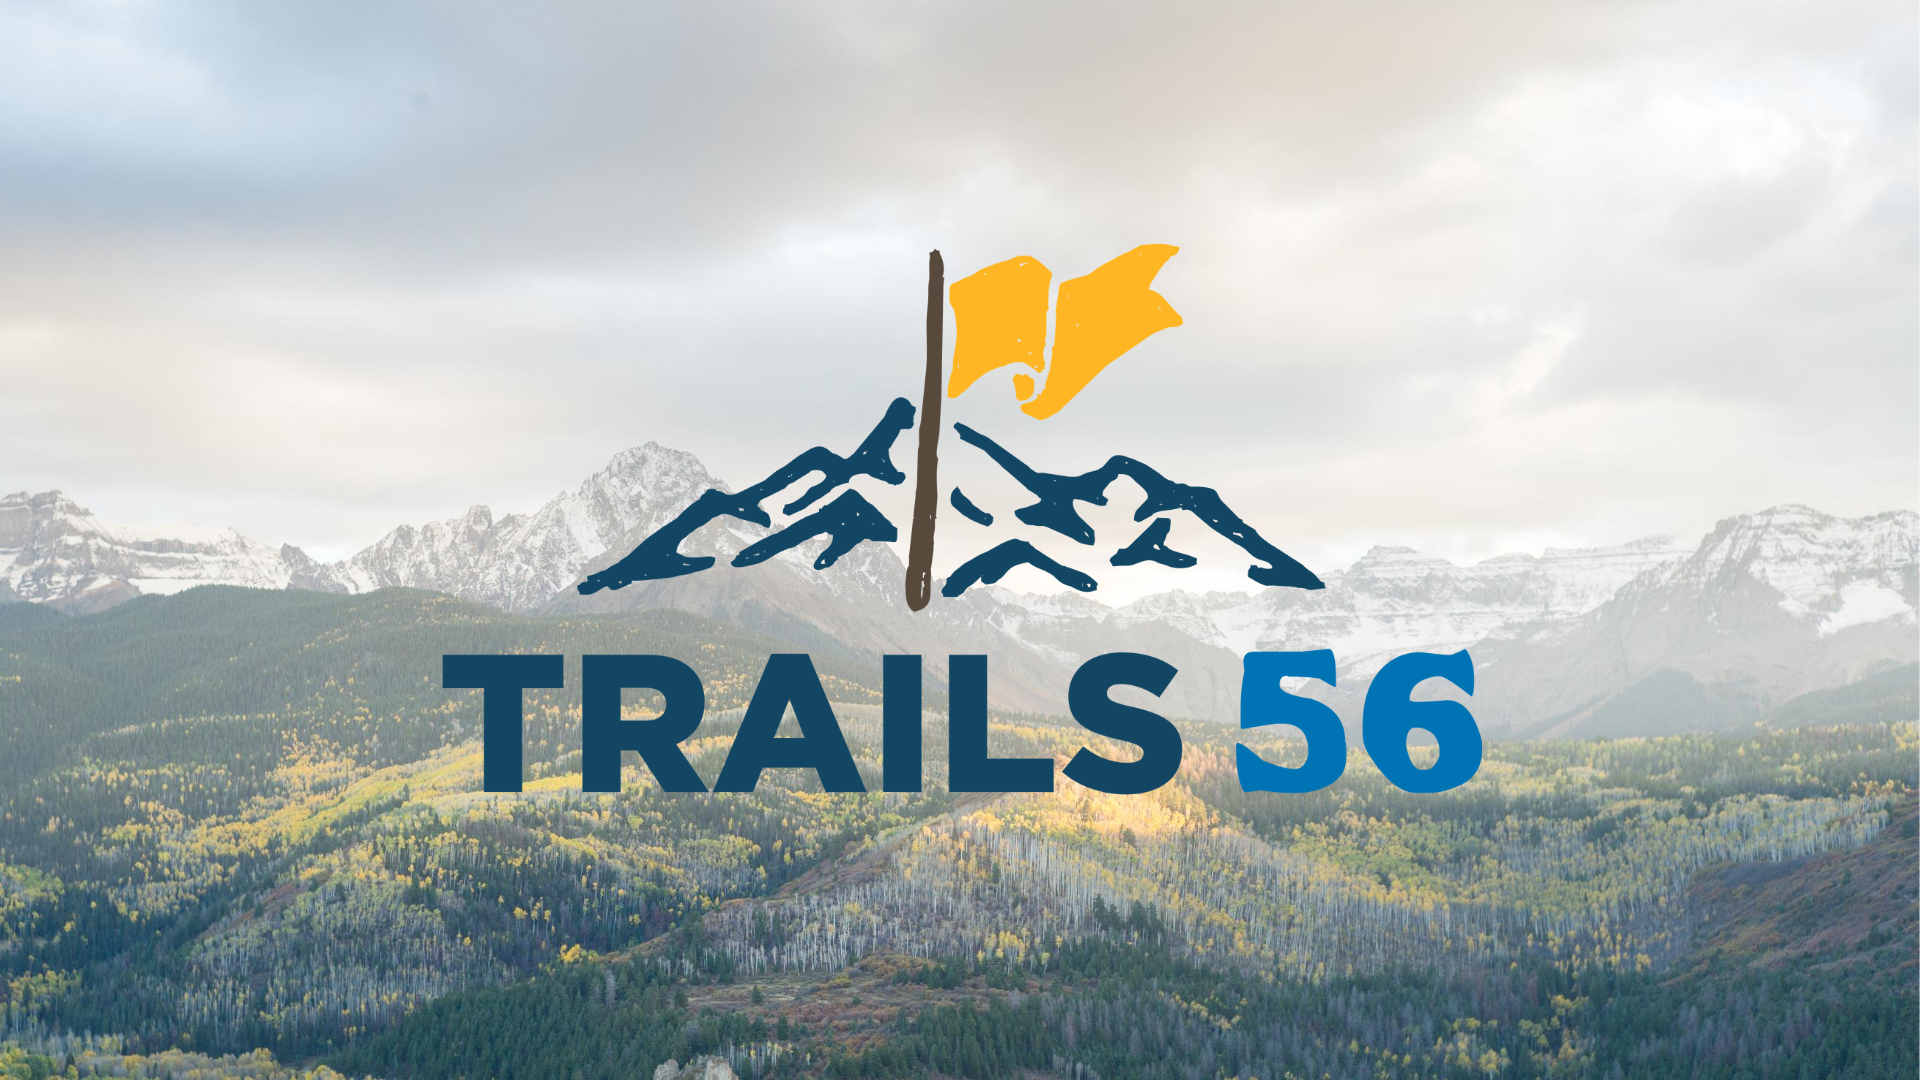 Trails 56 Fall 2020 image